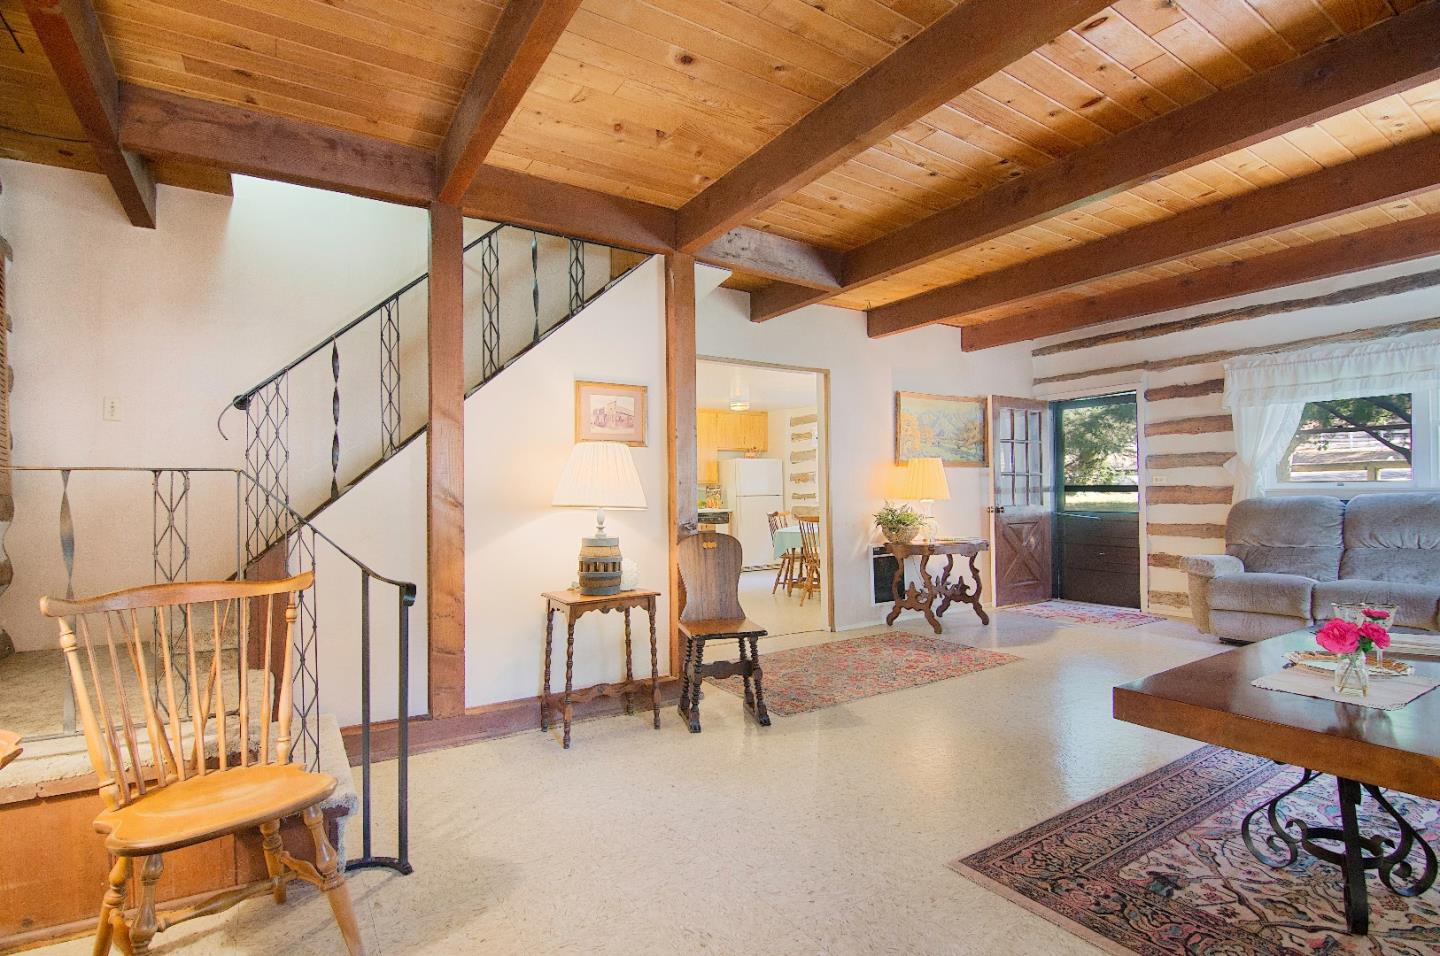 Additional photo for property listing at 12869 Sierra Way 12869 Sierra Way Kernville, Californie 93238 États-Unis